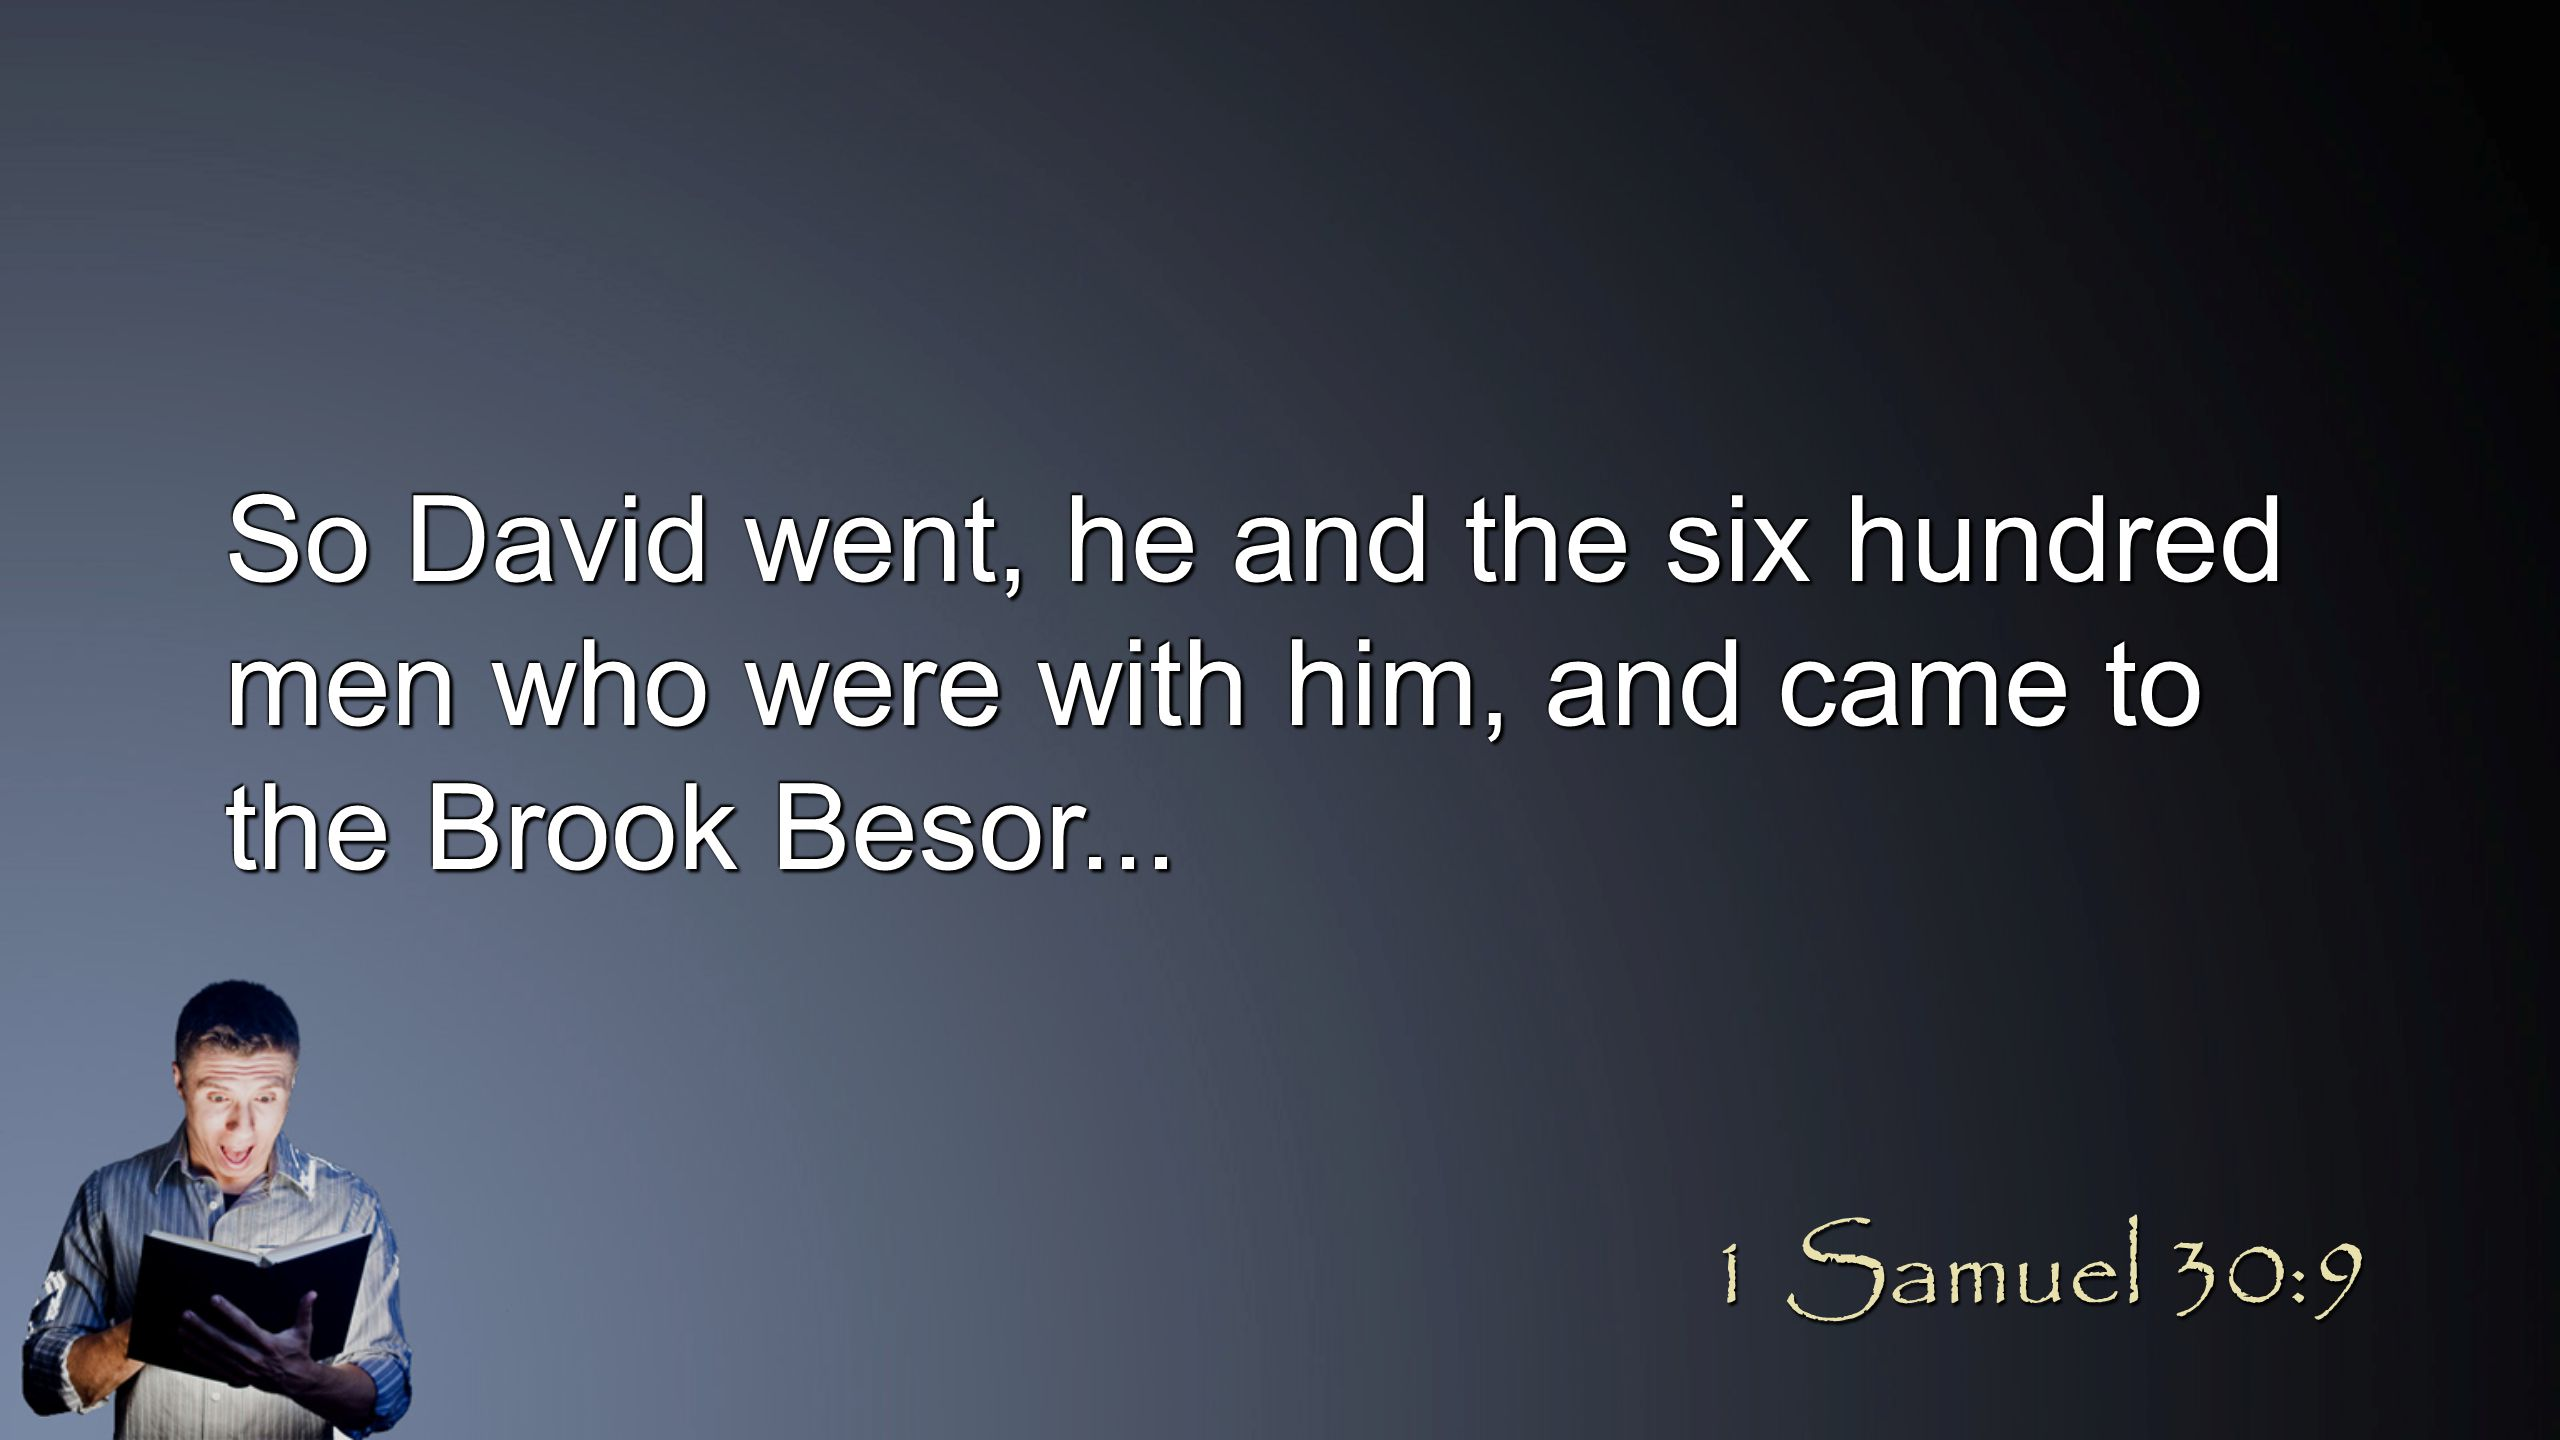 So David went, he and the six hundred men who were with him, and came to the Brook Besor... 1 Samuel 30:9